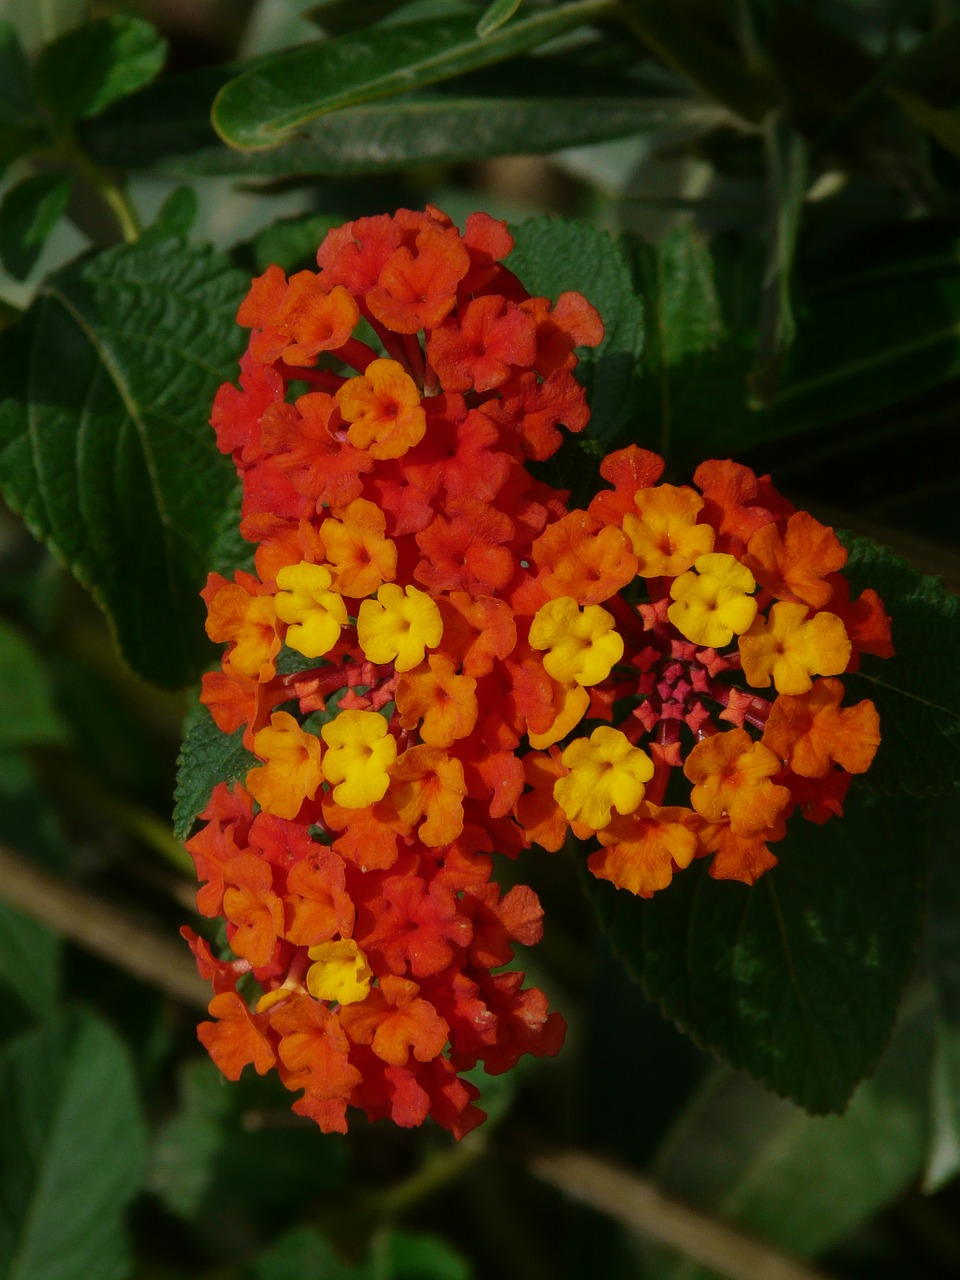 lantana,lantana camara,ornamental plant,red,orange,yellow,flower,blossom,bloom,verbena greenhouse,verbenaceae,plant,garden,free pictures, free photos, free images, royalty free, free illustrations, public domain